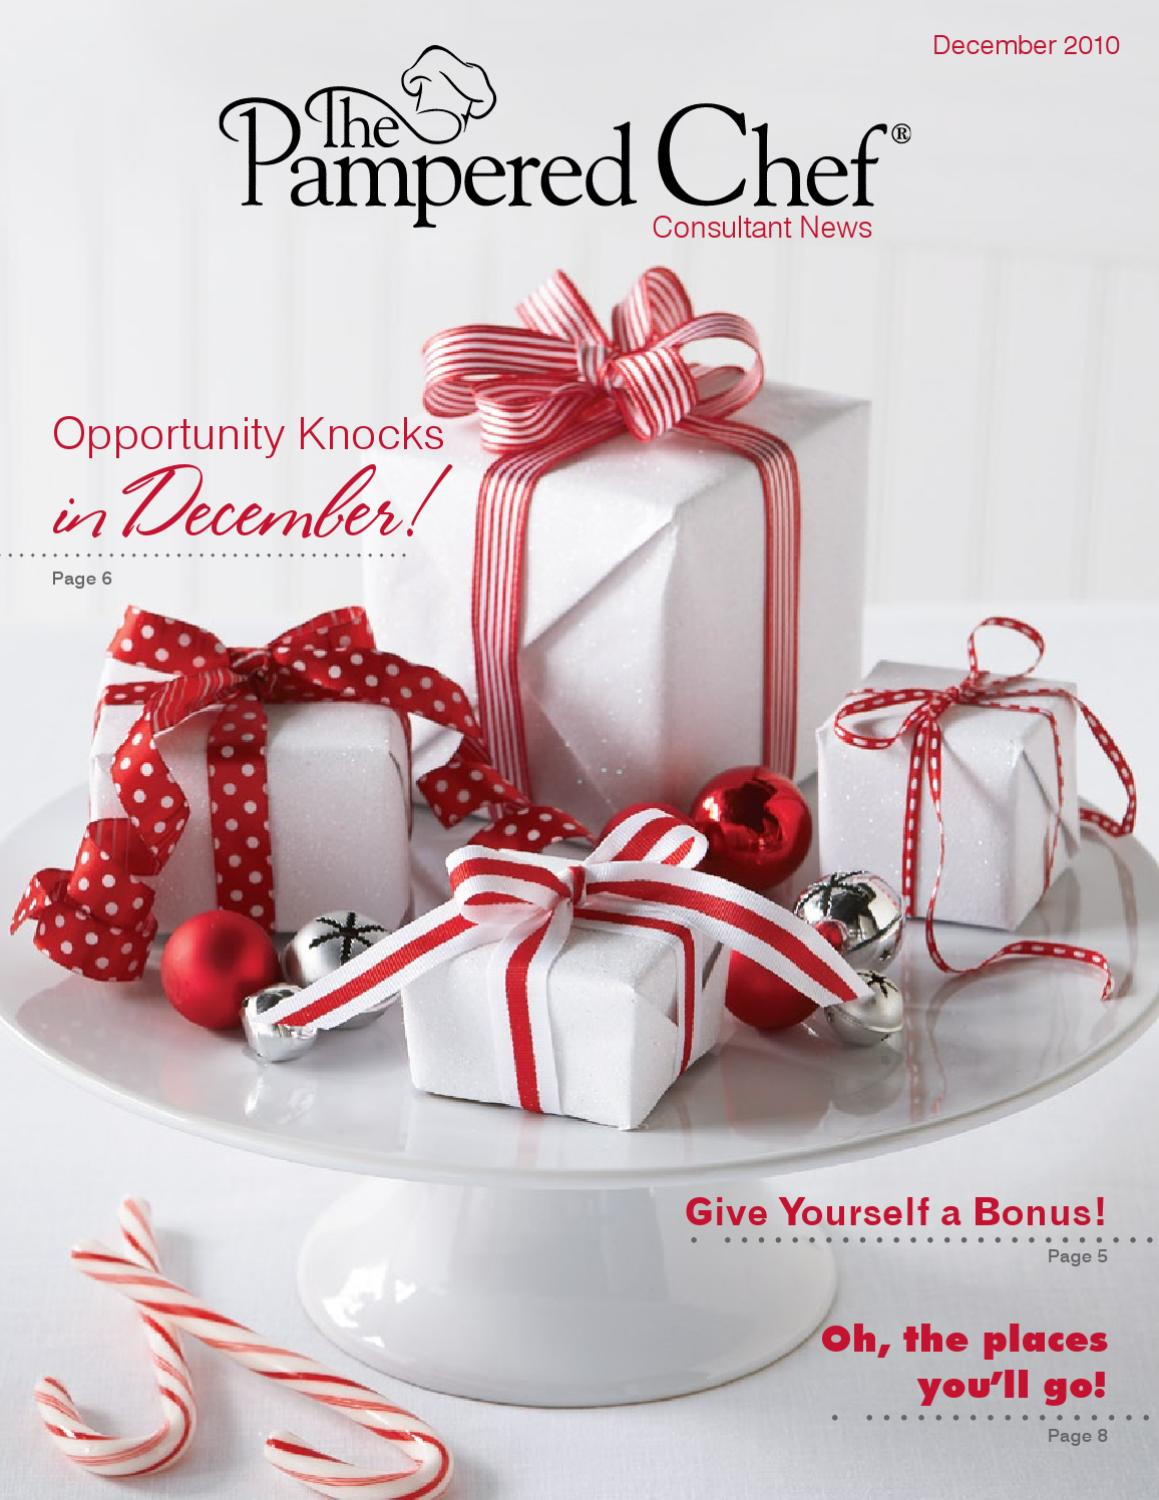 December Pc News By The Pampered Chef Ellowyn Isaacson Issuu